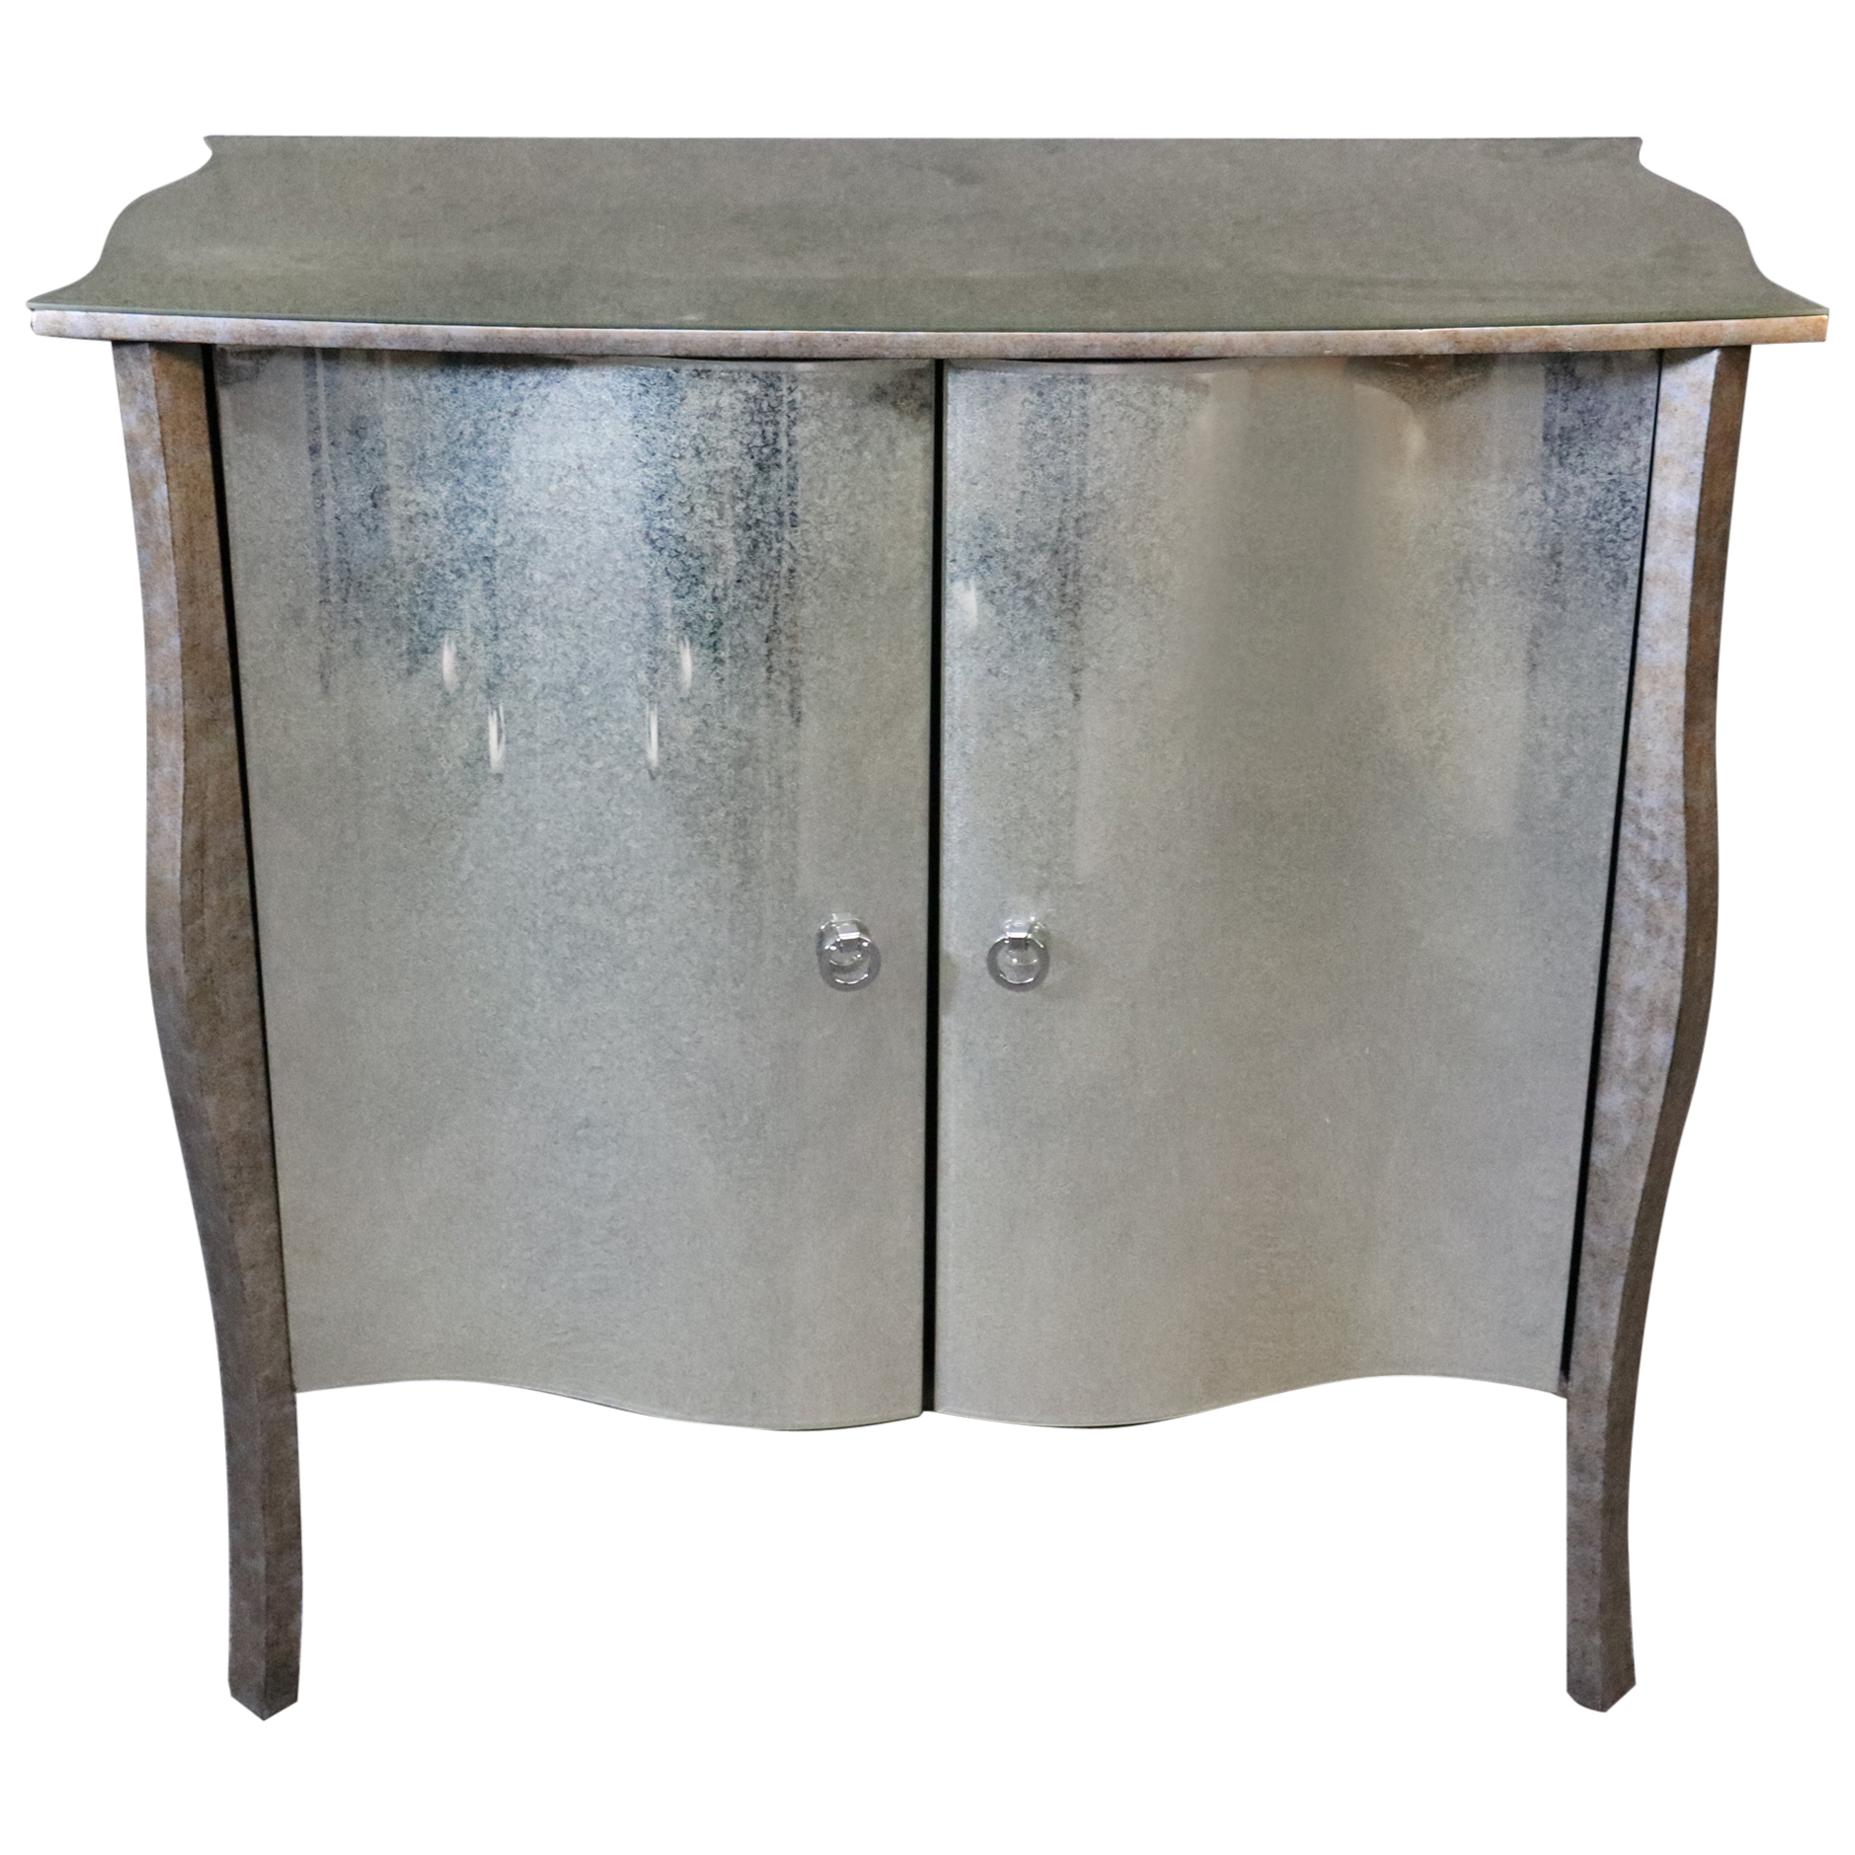 French Art Deco Patinated Mirror and Silver Leaf Glass Commode Two-Door Chest